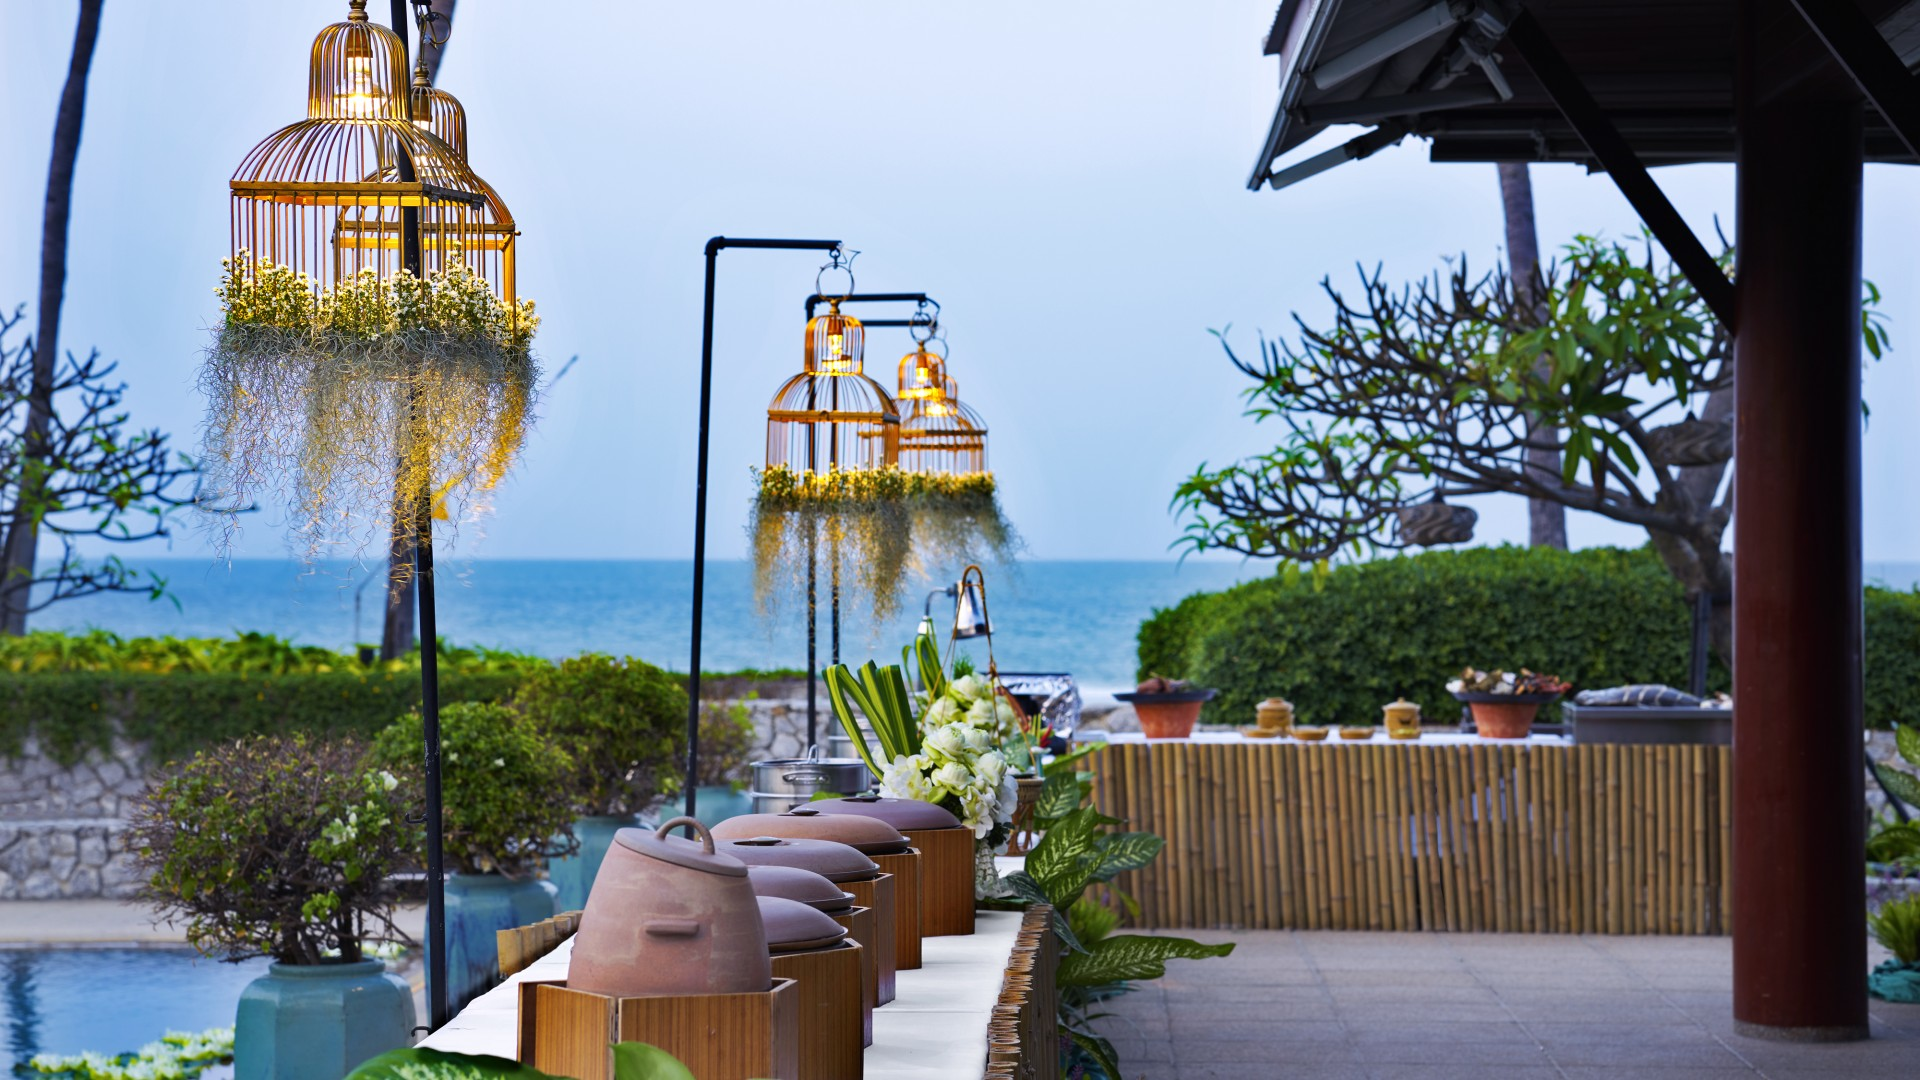 Chiva-Som International Health Resort, Prachuap Khiri Khan, Thailand